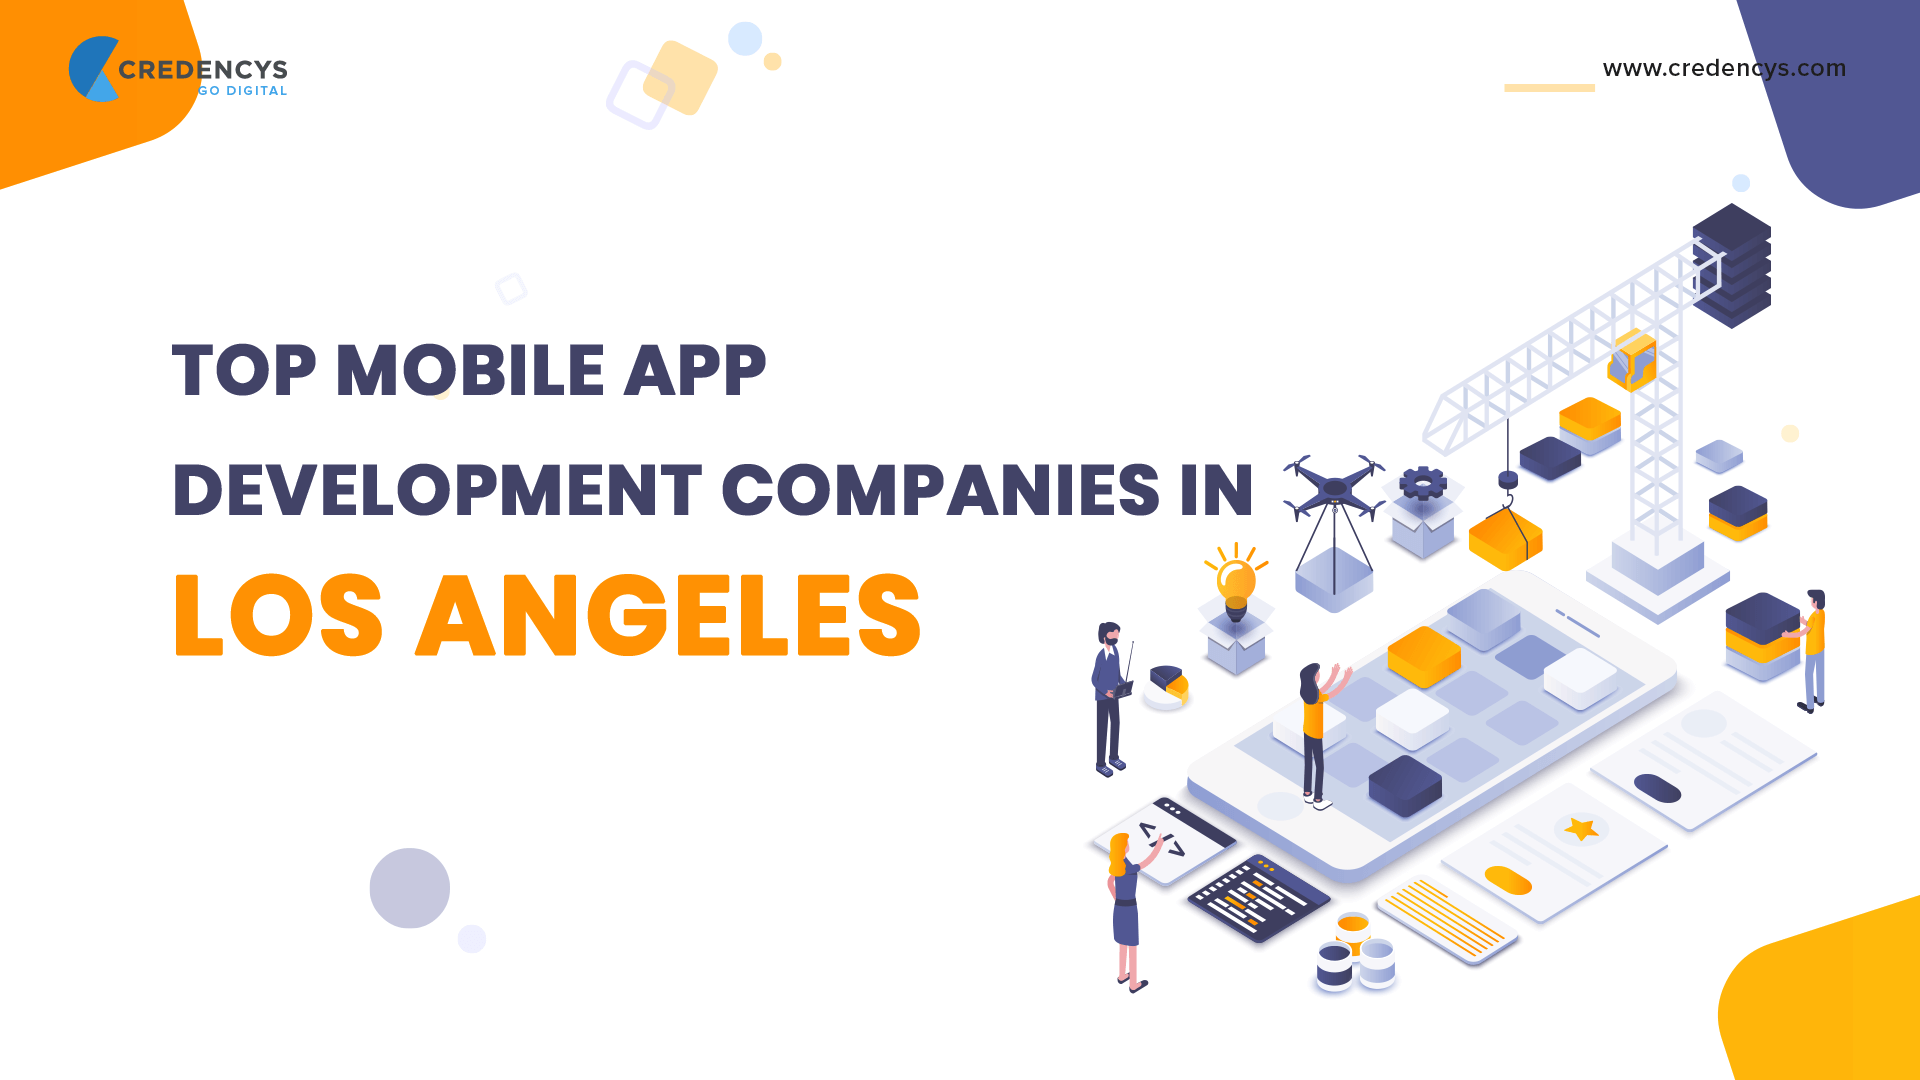 Top Mobile App Development Companies in Los Angeles (2019)